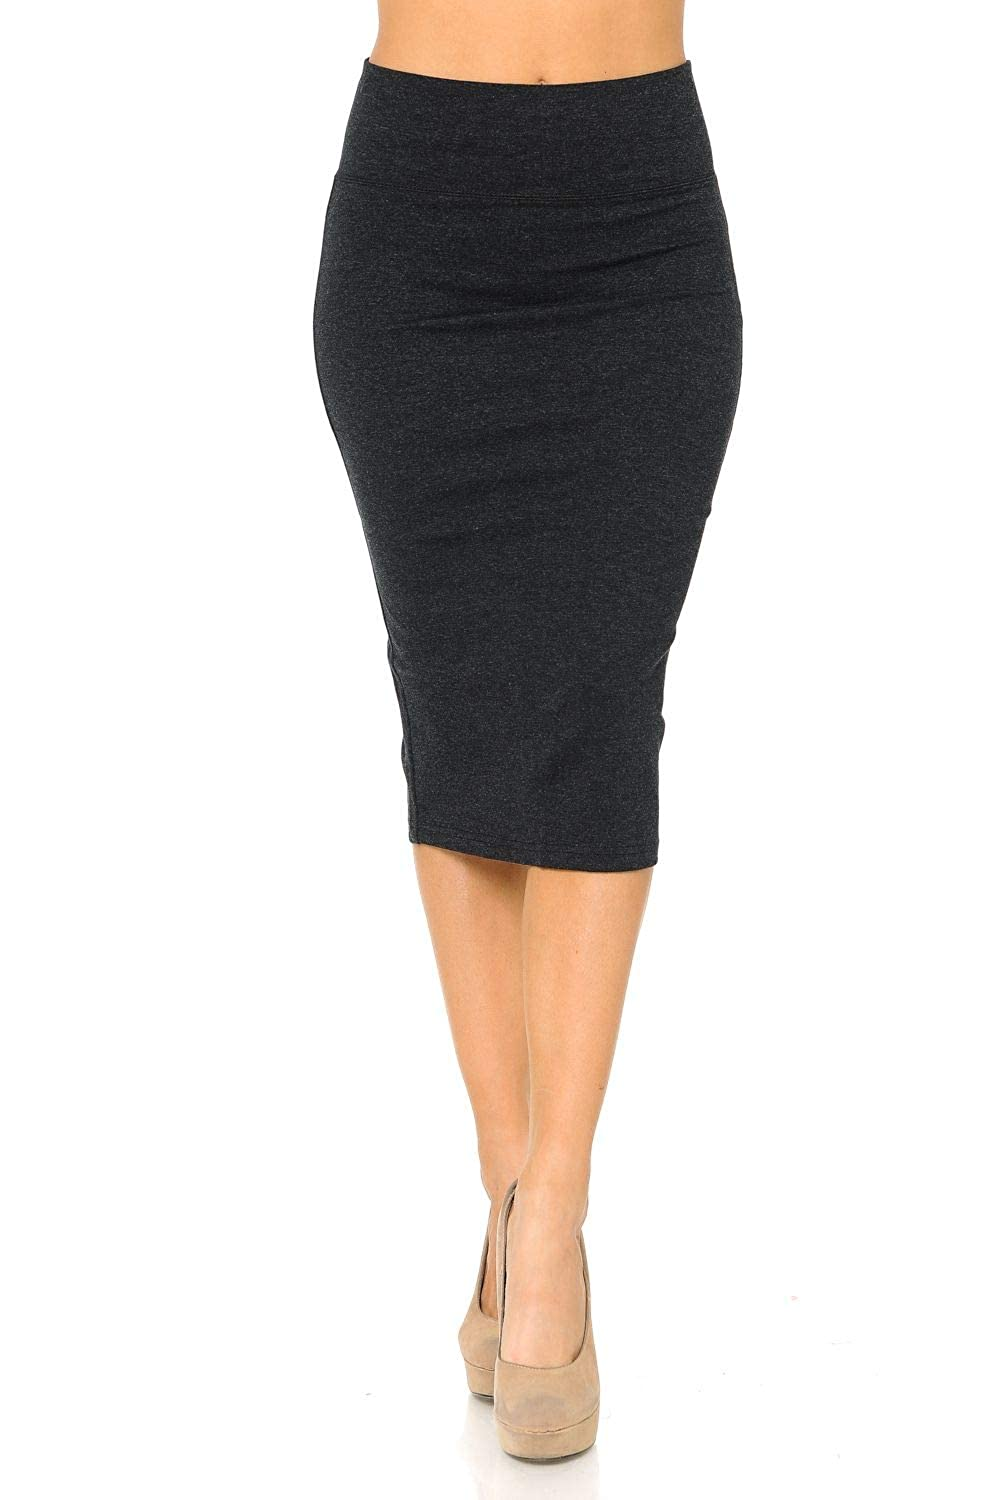 Aulin/é Collection Womens Solid Fitted High Waist Stretch Midi Ponte Pencil Skirt